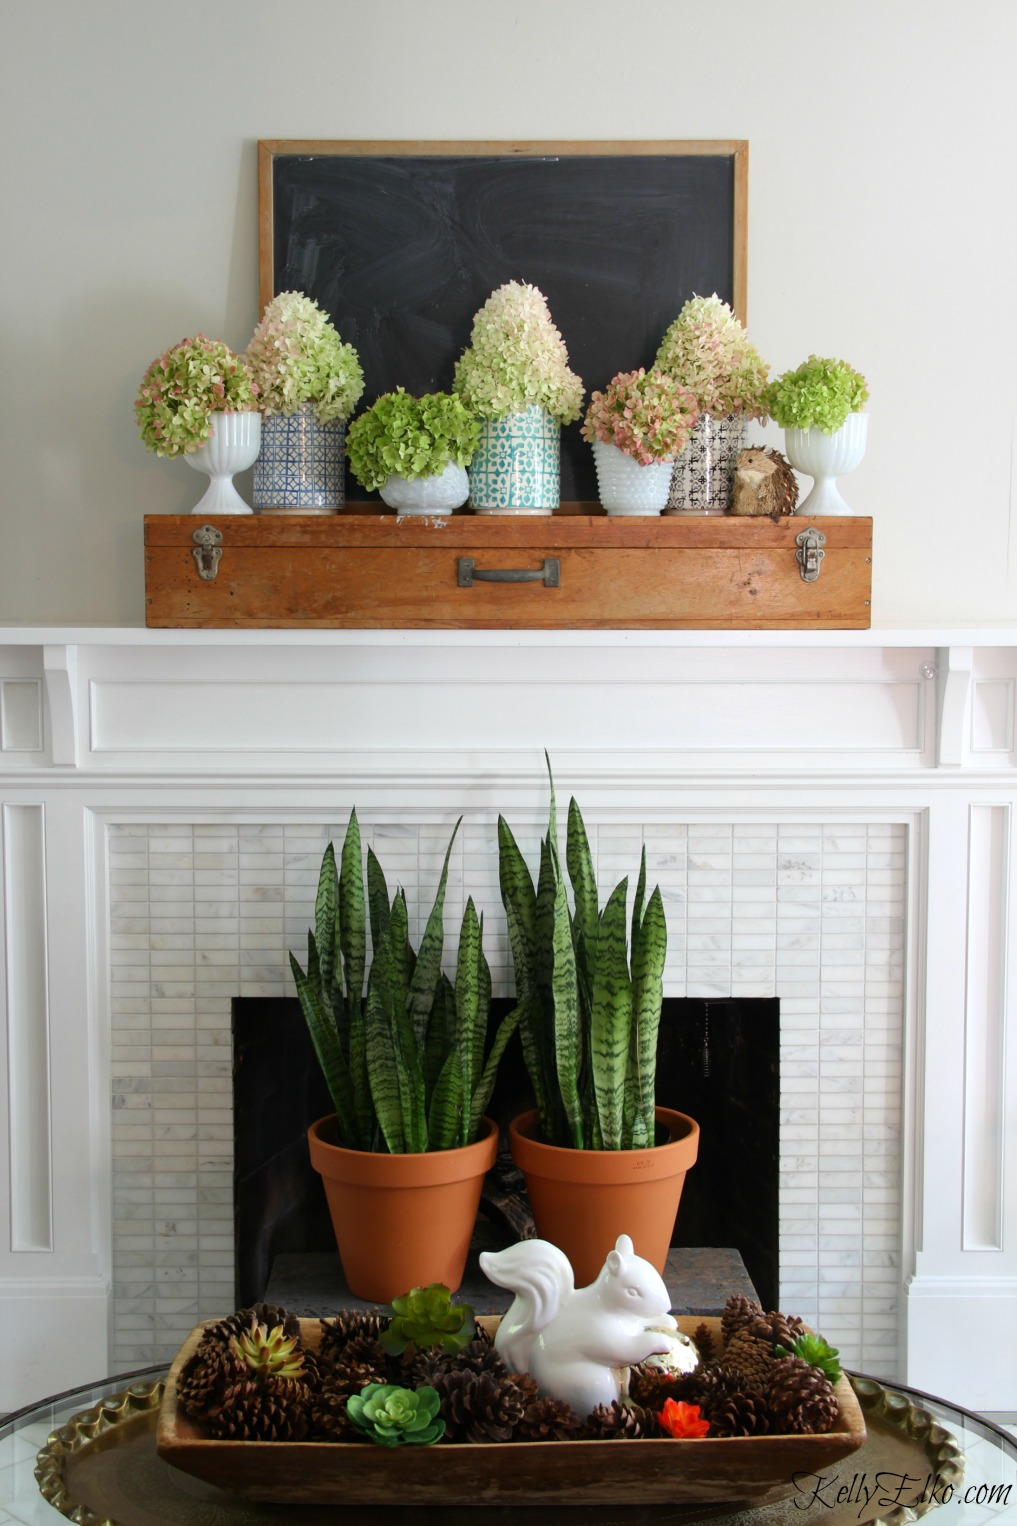 Gorgeous fall mantel hydrangeas - love the vintage finds and plants kellyelko.com